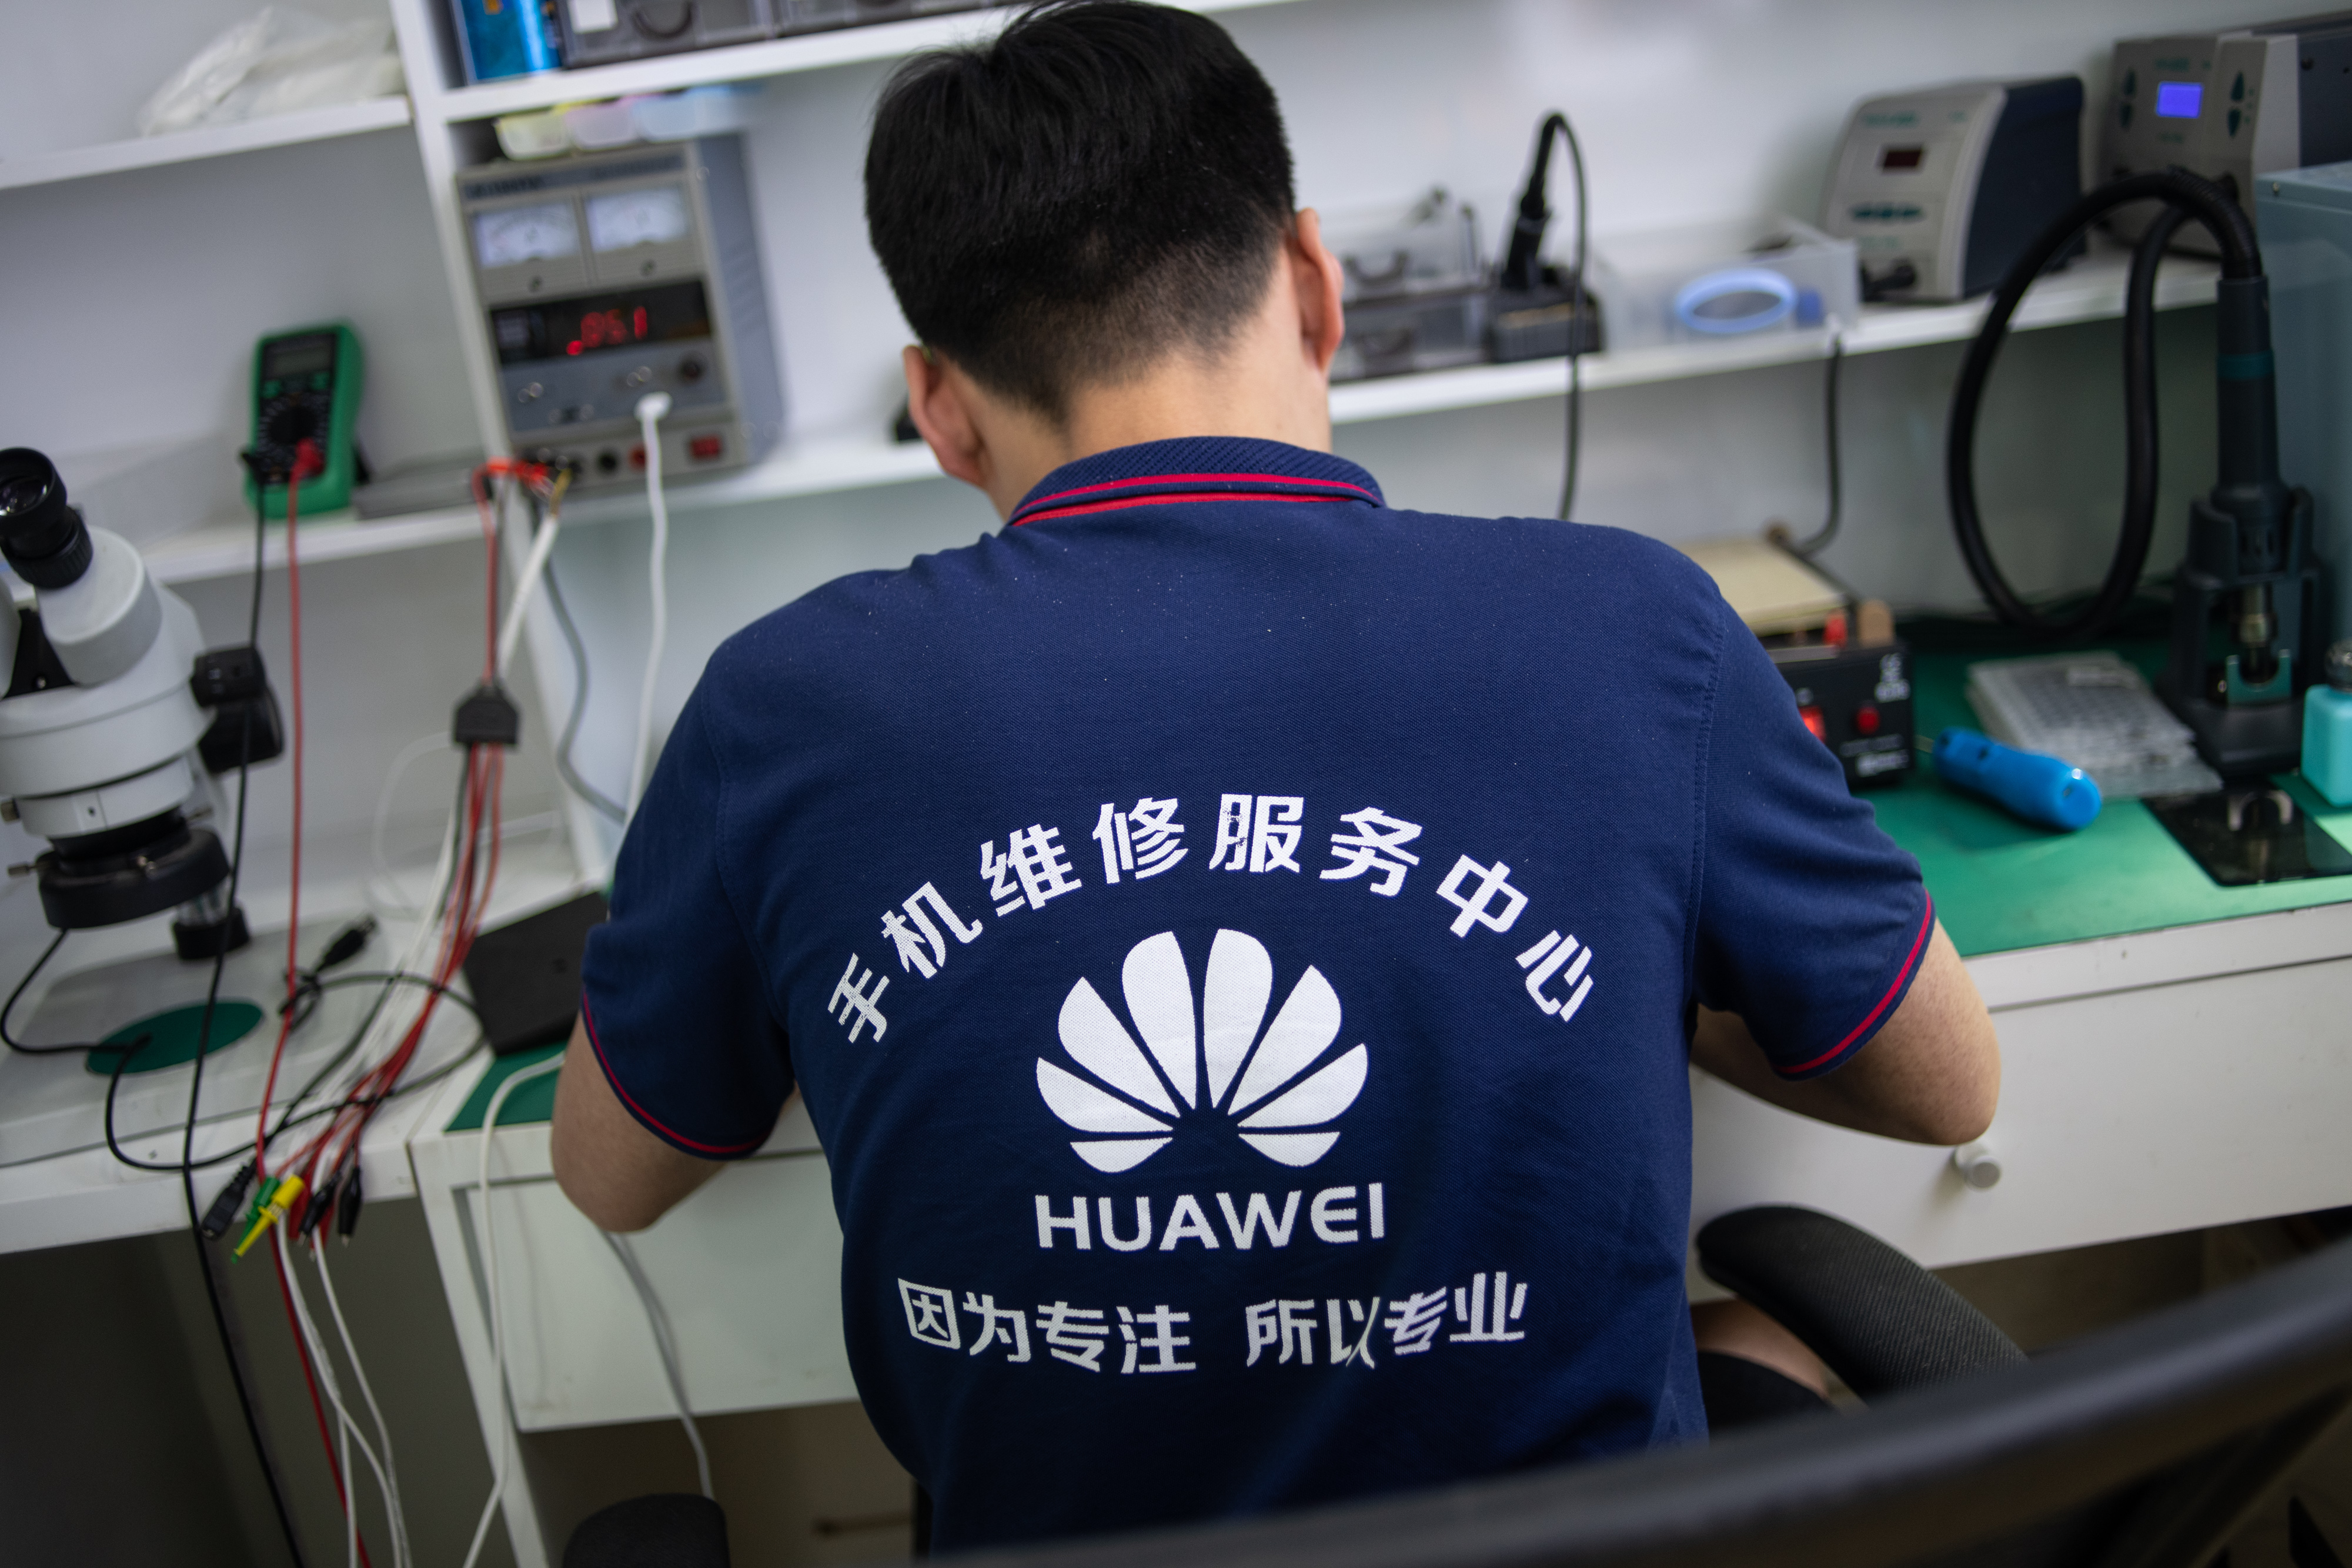 In this photo taken on May 27, 2019, a worker wearing a Huawei shirt fixes phones at a retail store in Beijing. - China is digging in for a tough period of deteriorating ties with the United States, fanning the flames of patriotism with Korean War films, a viral song on the trade war, and editorials lambasting Washington. (Photo by FRED DUFOUR / AFP) (Photo credit should read FRED DUFOUR/AFP/Getty Images)